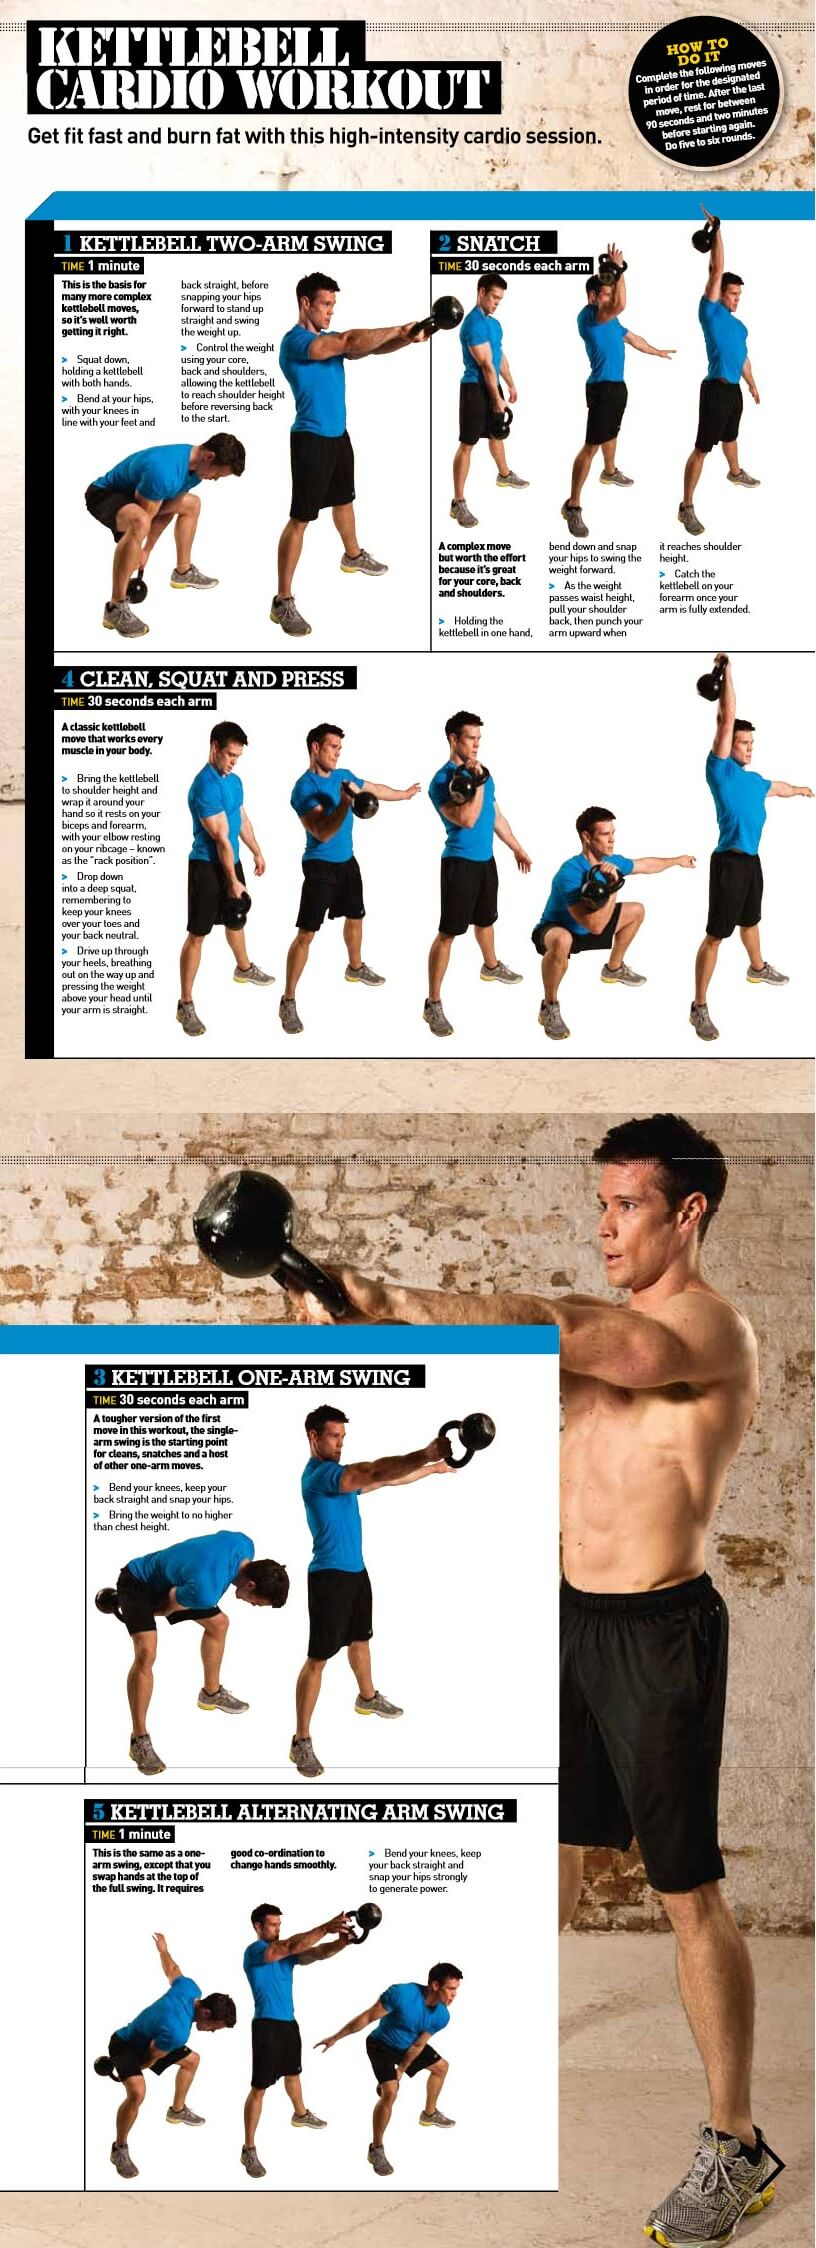 kettle-bell-cardio-workout11